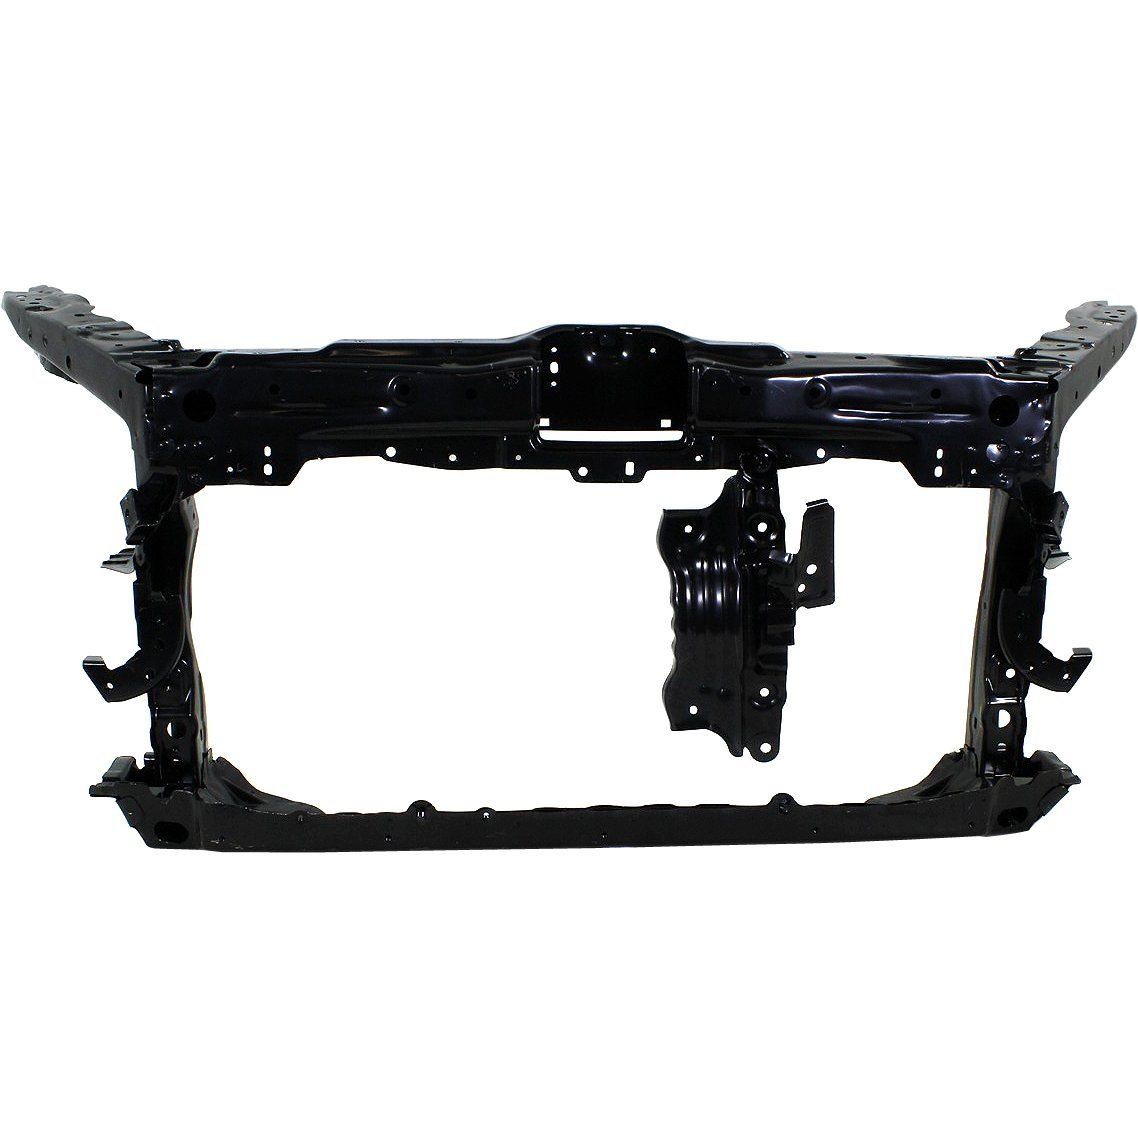 Radiator Support For 2012-2014 Acura TL FWD Primed